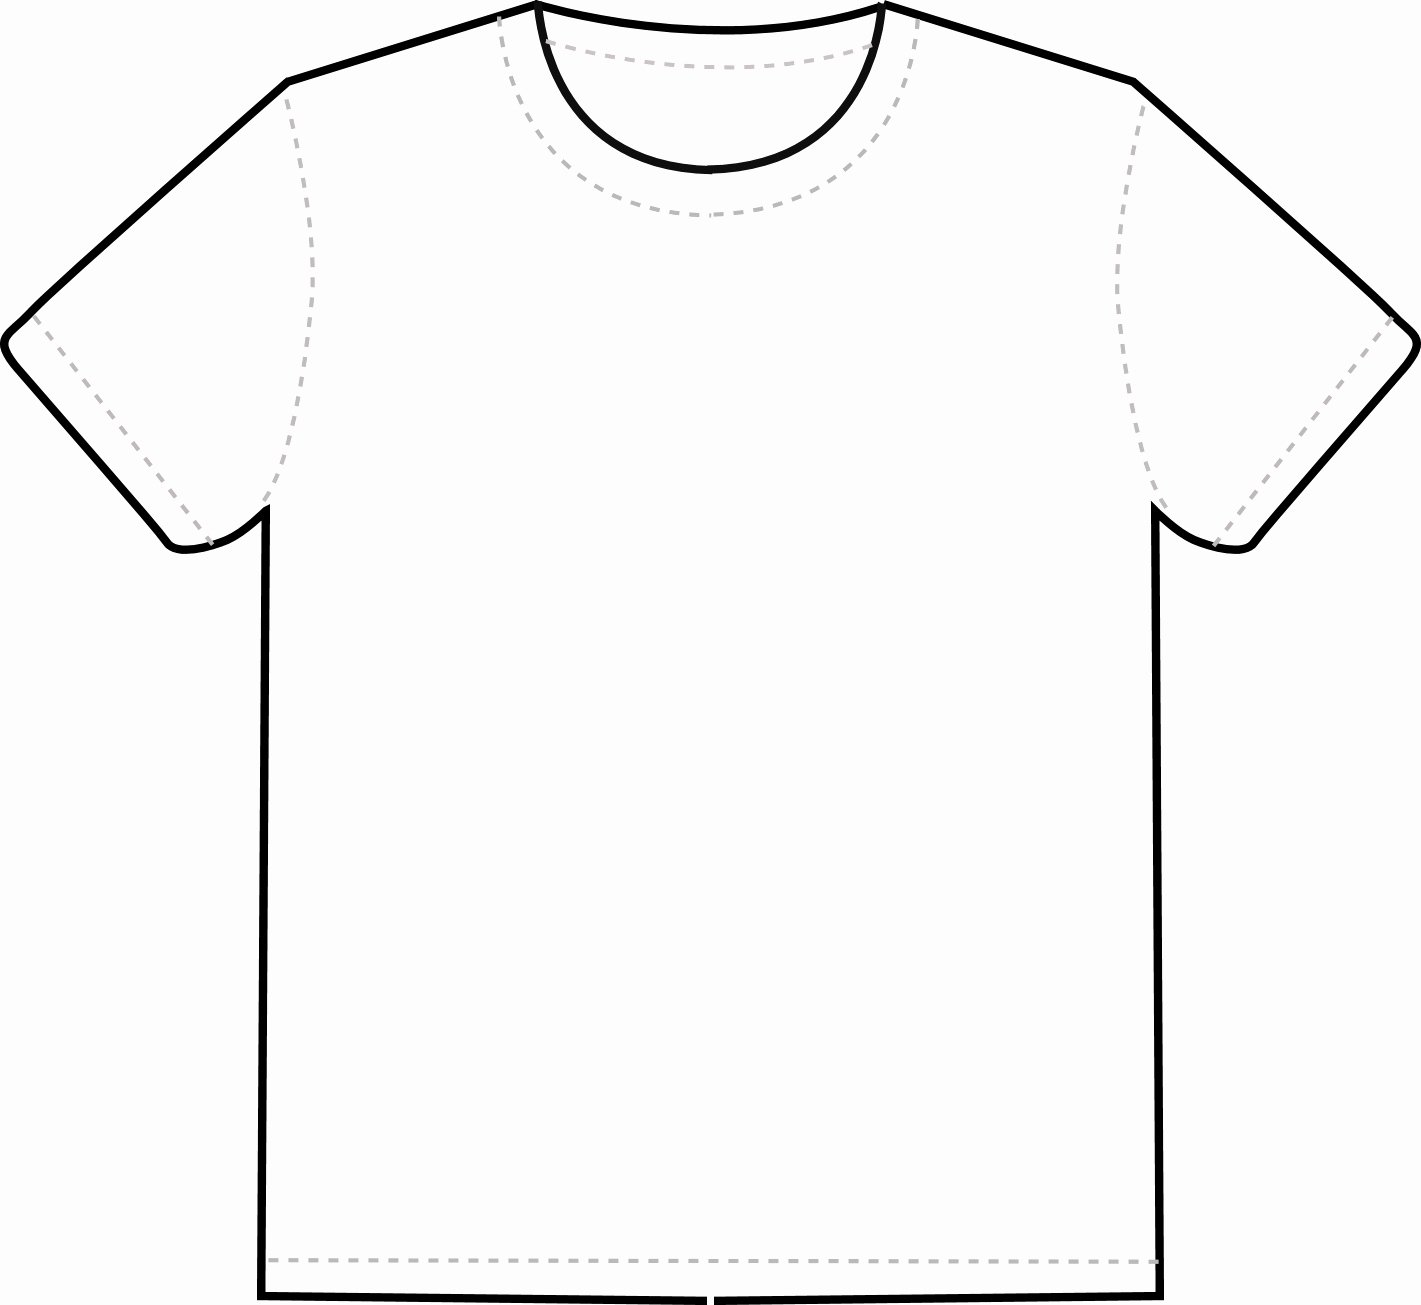 Blank Tshirt Template Inspirational Free T Shirt Template Printable Download Free Clip Art